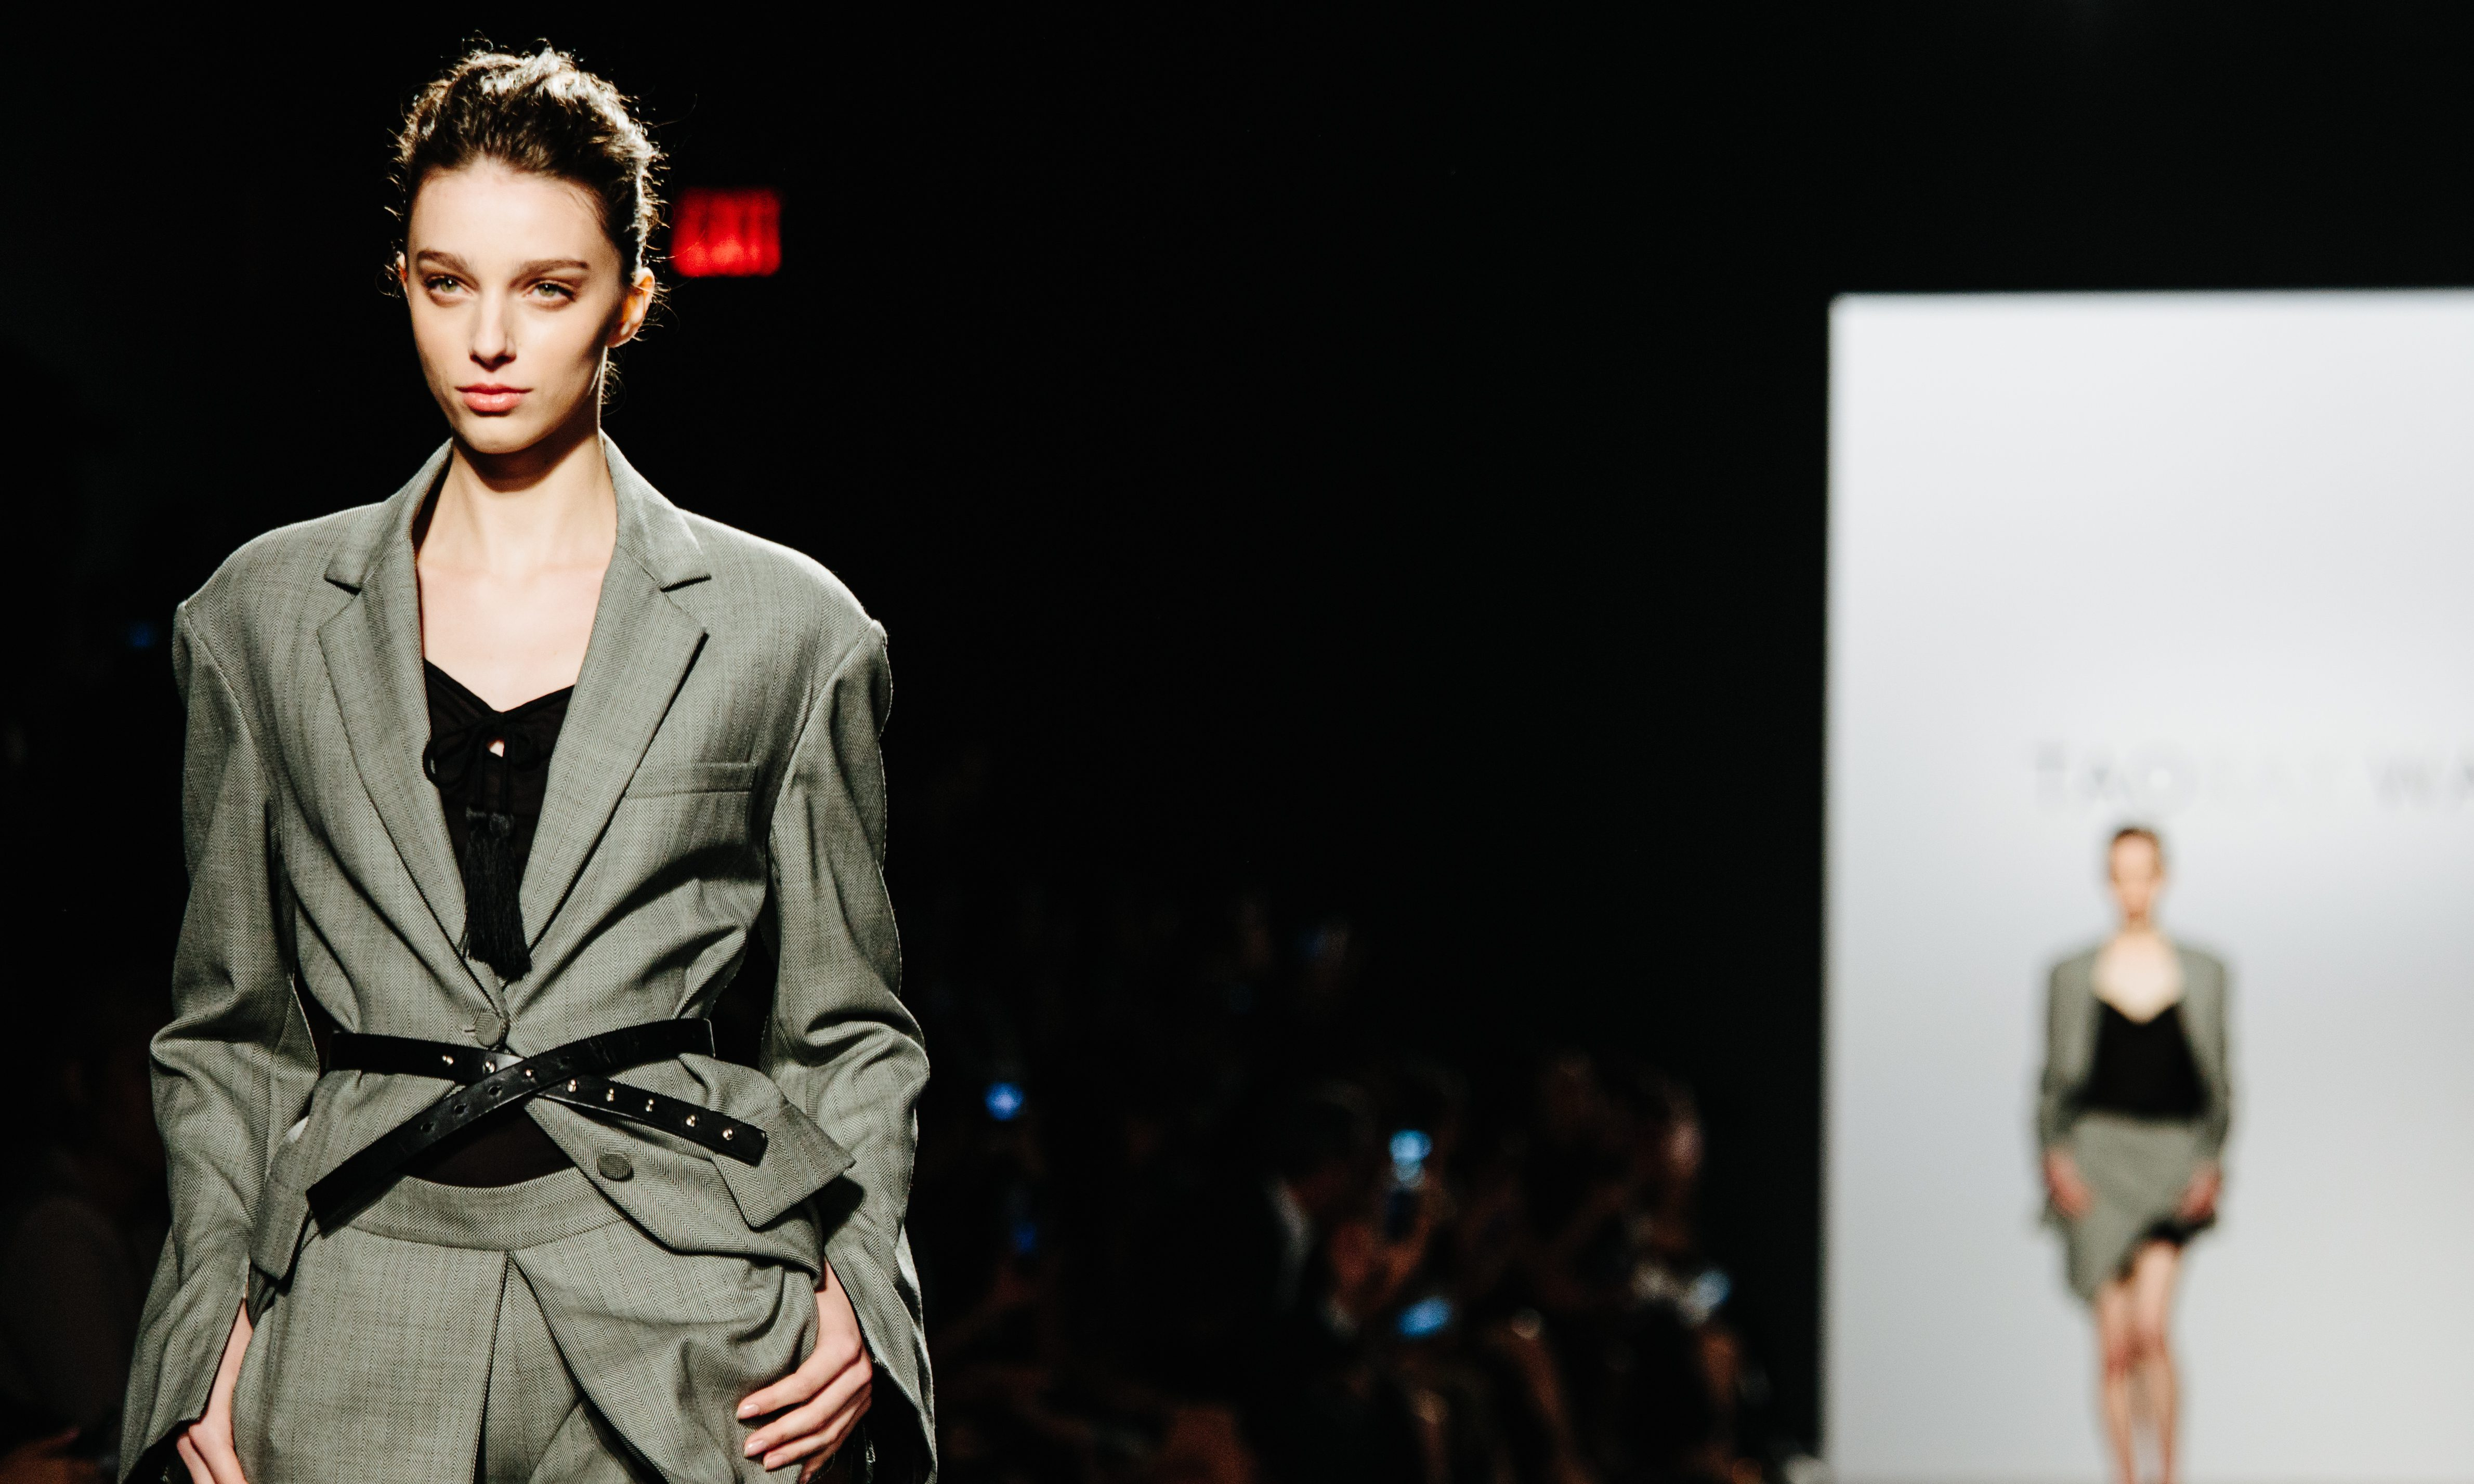 A model presents a creation from the Taoray Wang collection at New York Fashion Week Spring 2018, in New York, New York, USA, 09 September 2017. The Spring 2018 collections are being presented from 07 to 13 September.